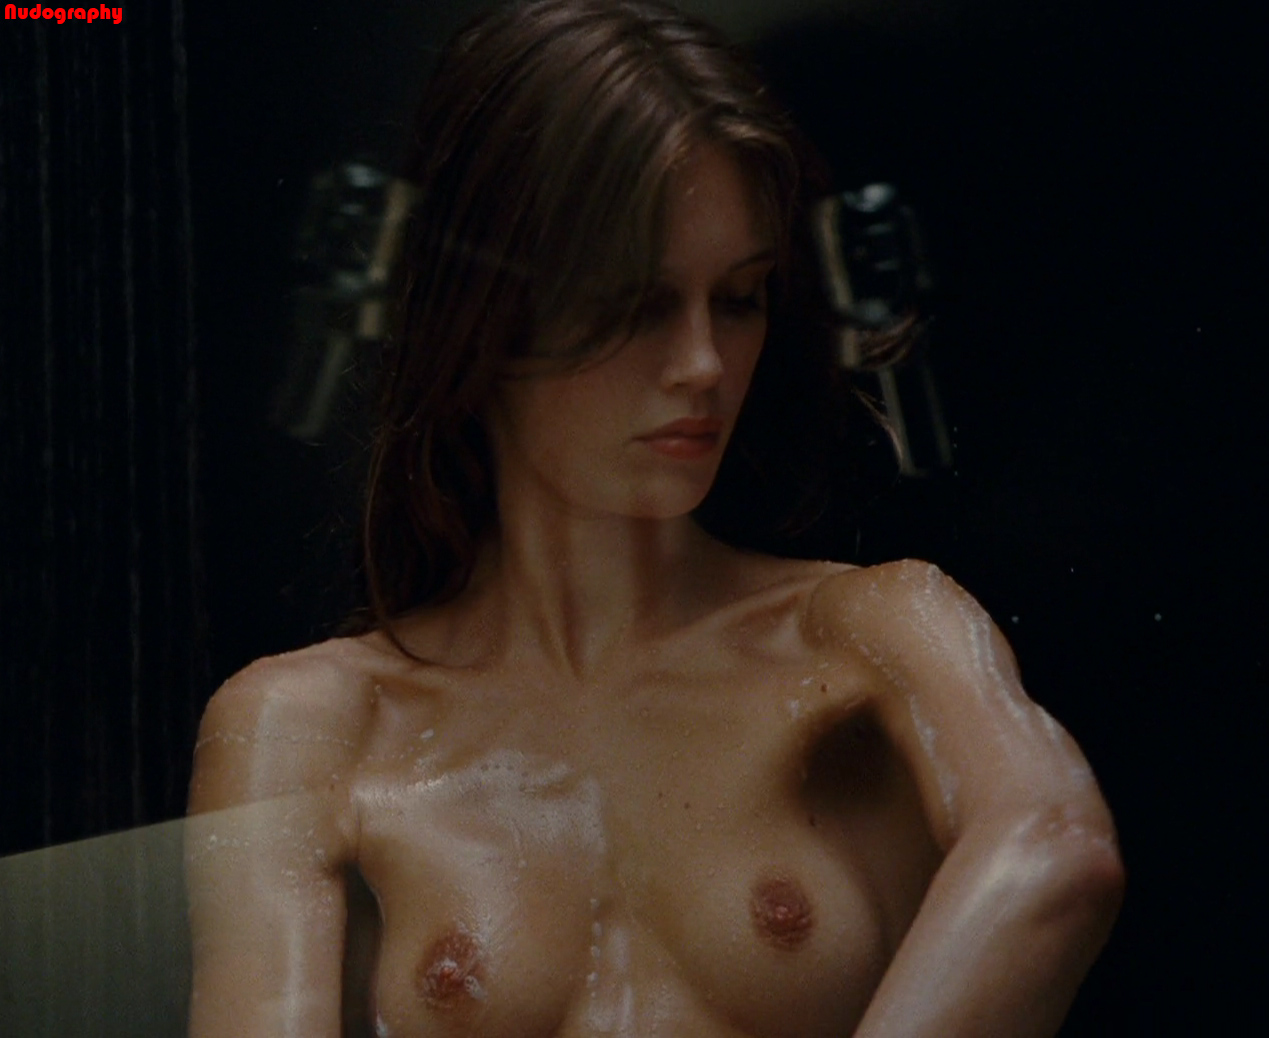 Marine vacth nude and sexy